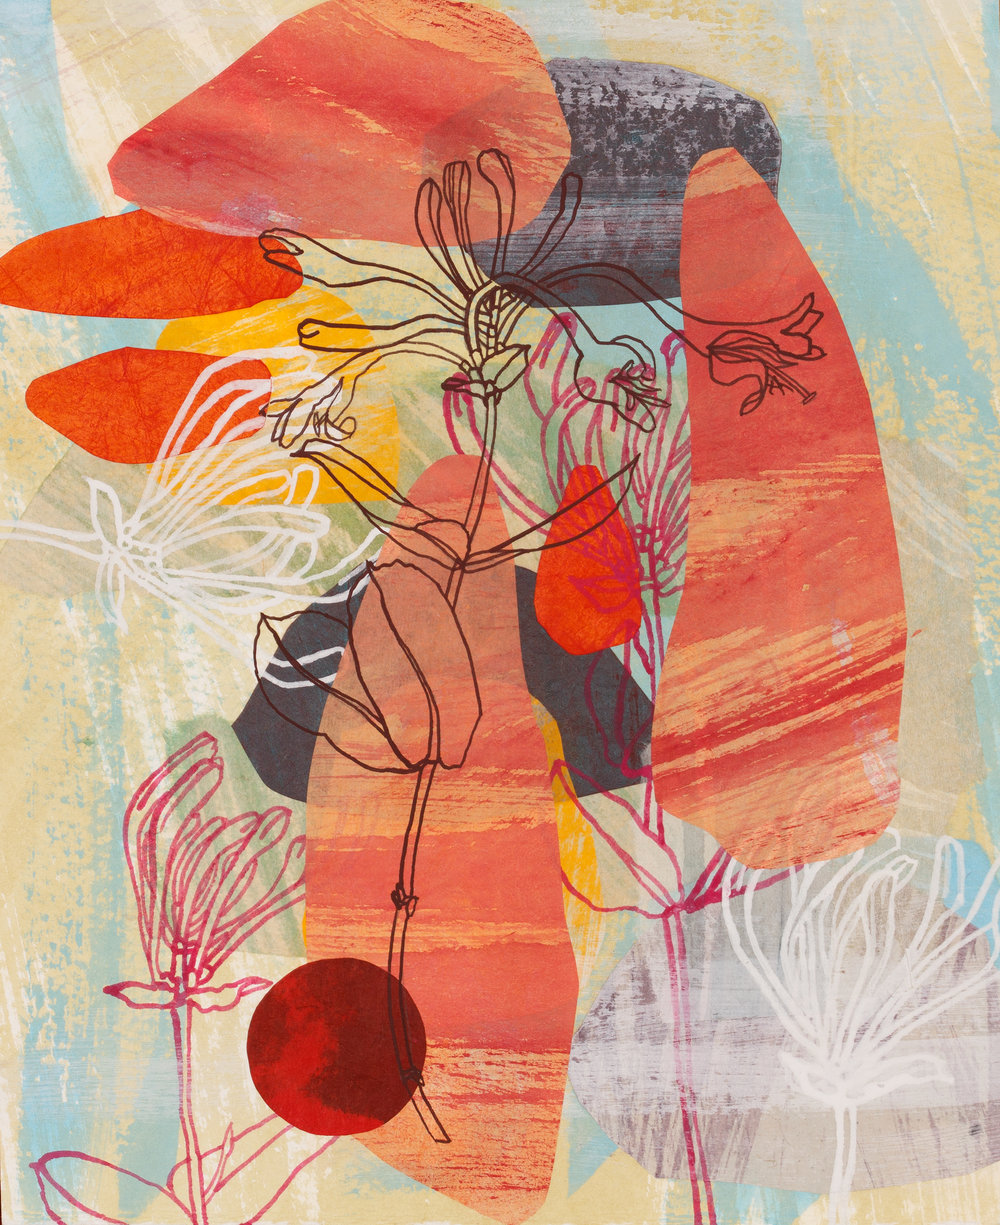 Walking with Jean Bellette#1cerise honeysuckle_Julie Bradley_mixed media_2017_29 x23.7cm.JPG